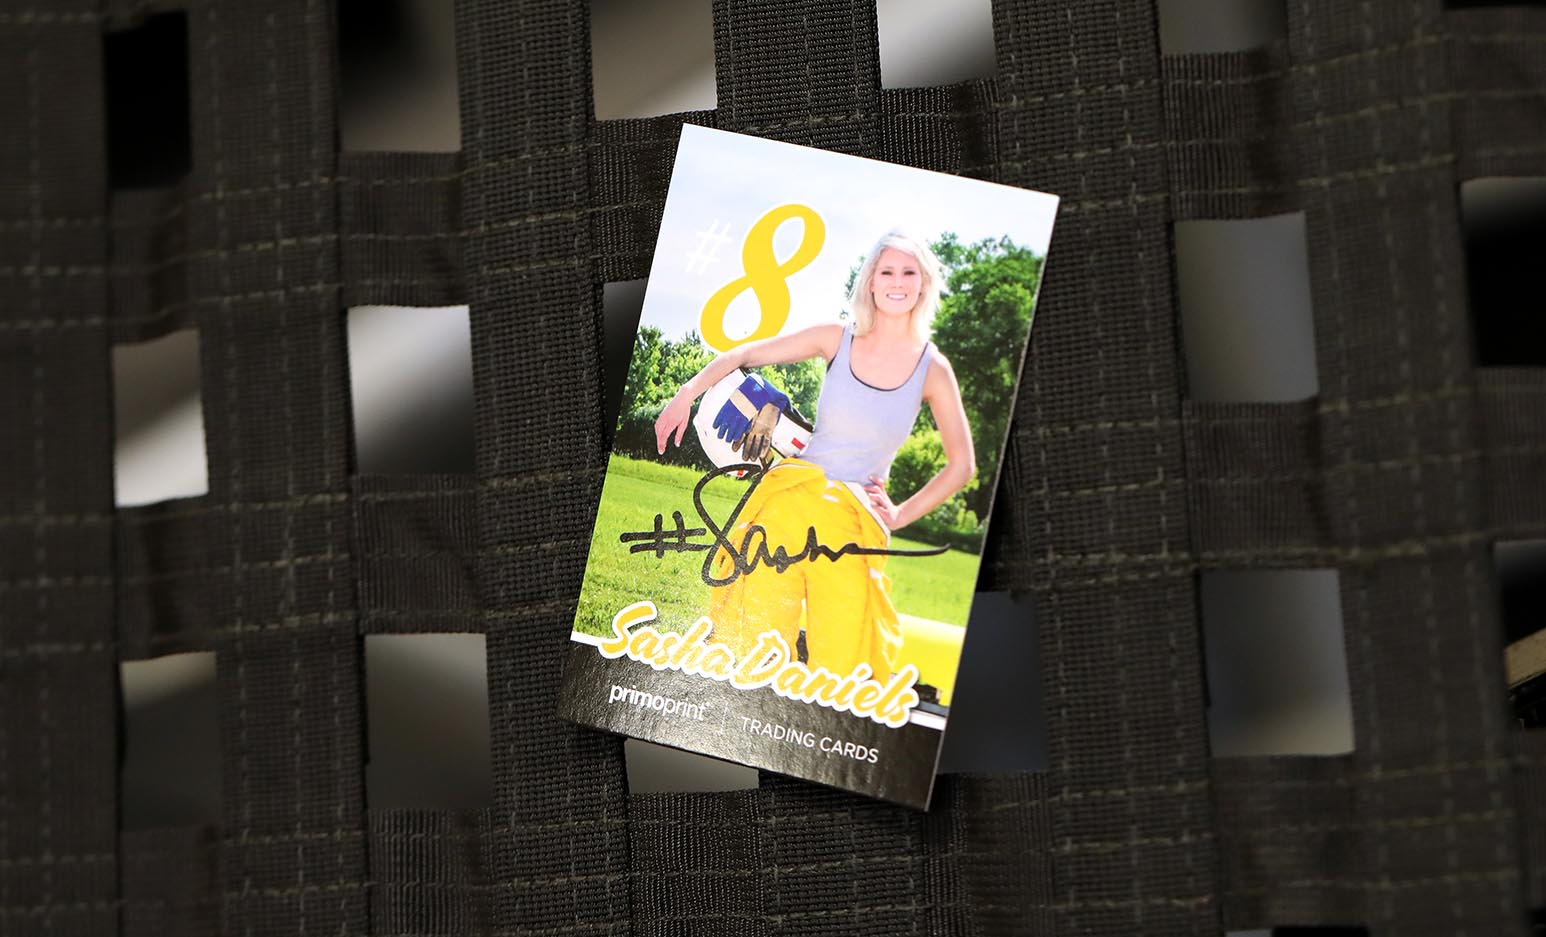 From race car drivers to baseball players, trading cards the perfect way to connect with fans, commemorate a season, or promote your sponsors and stats.